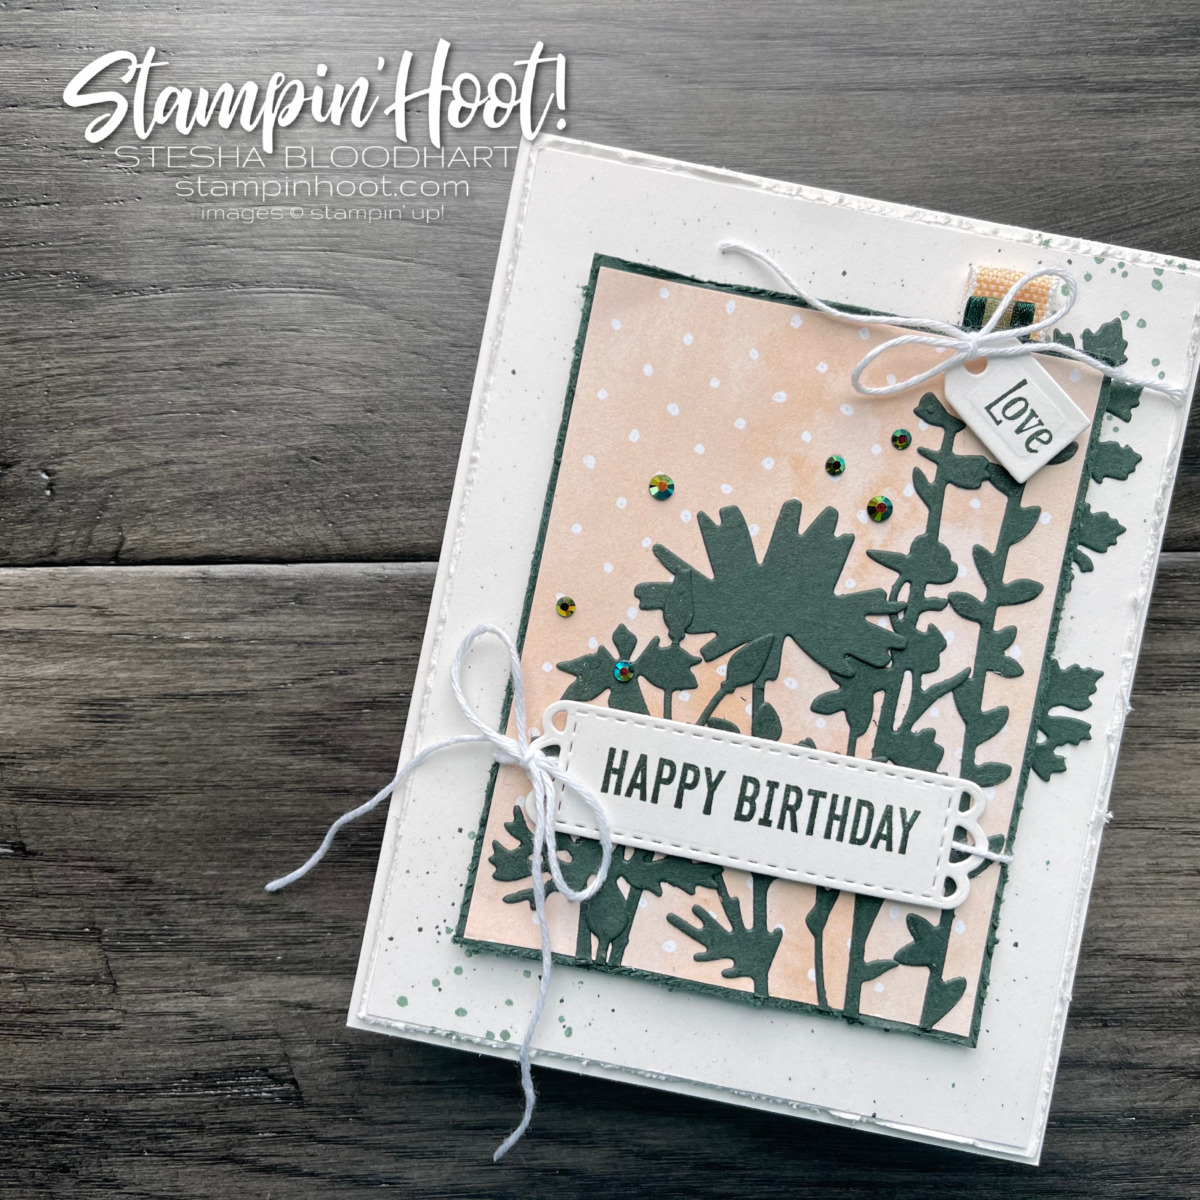 Quiet Meadow Bundle and Hand-Penned by Stampin' Up! Sneak Peek Happy Birthday Card by Stesha Bloodhart, Stampin' Hoot!